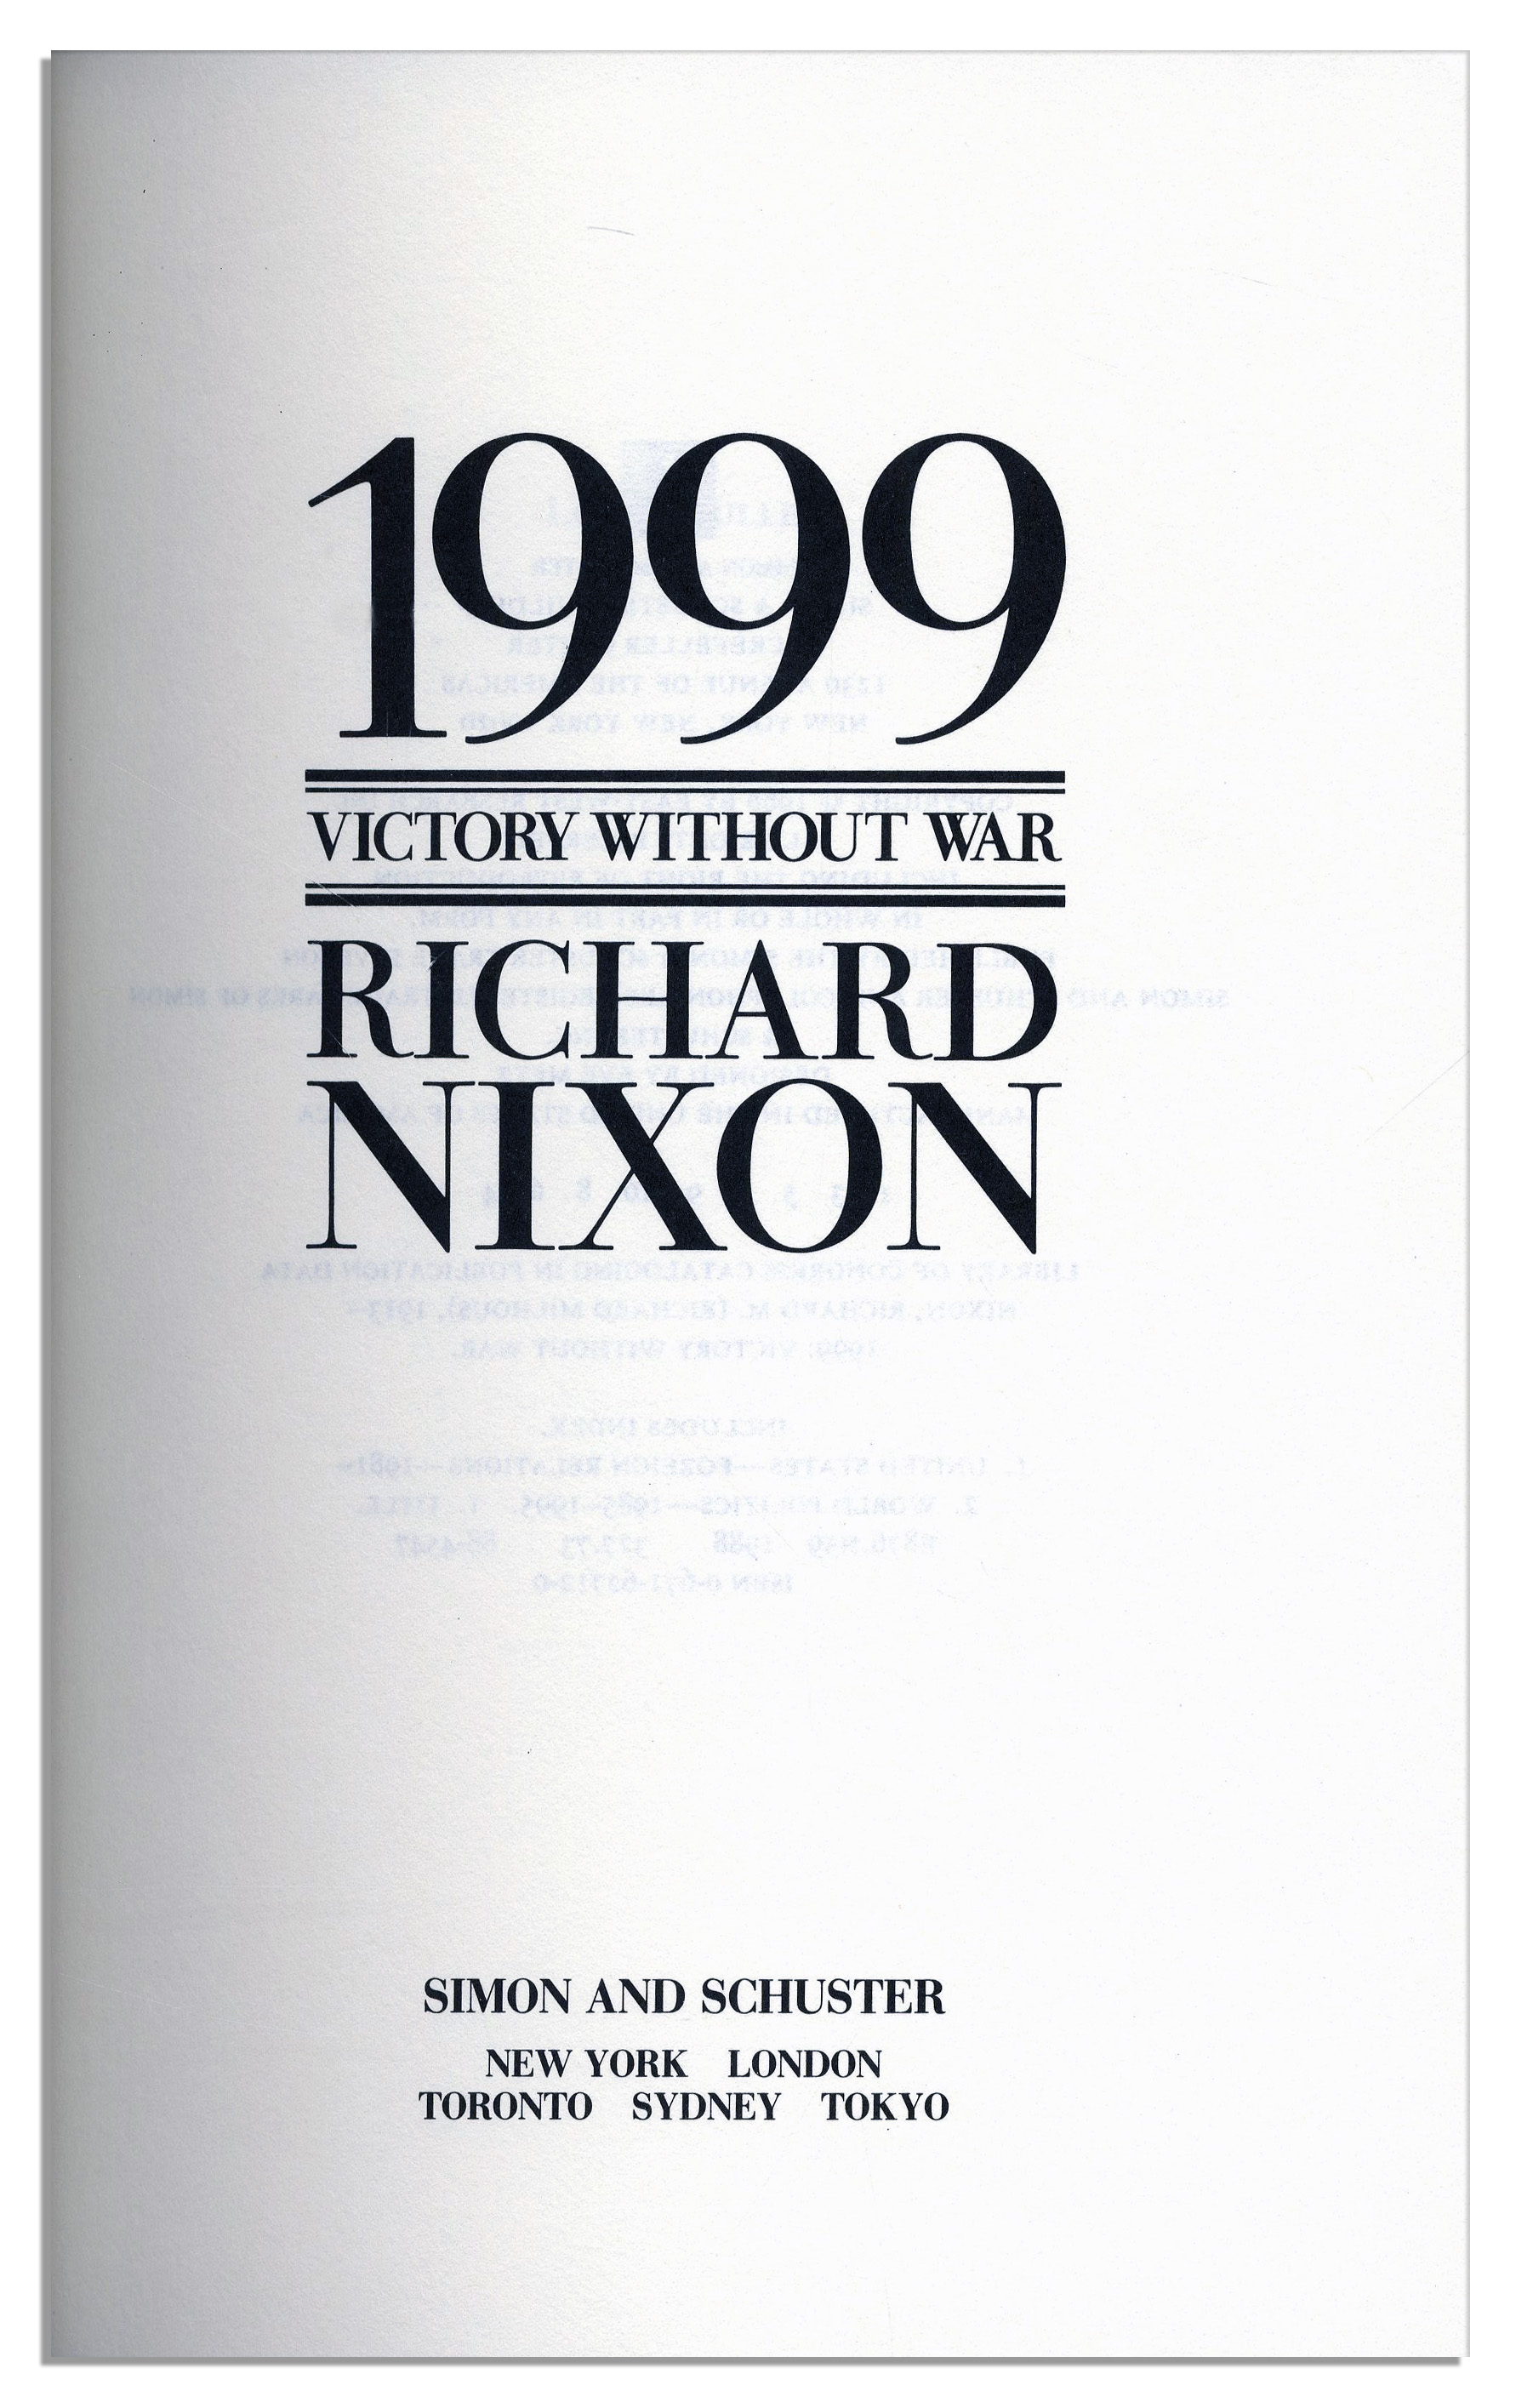 victory war essay Background the vietnam war is classed under cold-war military conflict due to the political cause for the war the conflict was fought between north vietnam, reinforced by the communist allies and south vietnam, supported by the us and some anti-communist countries.